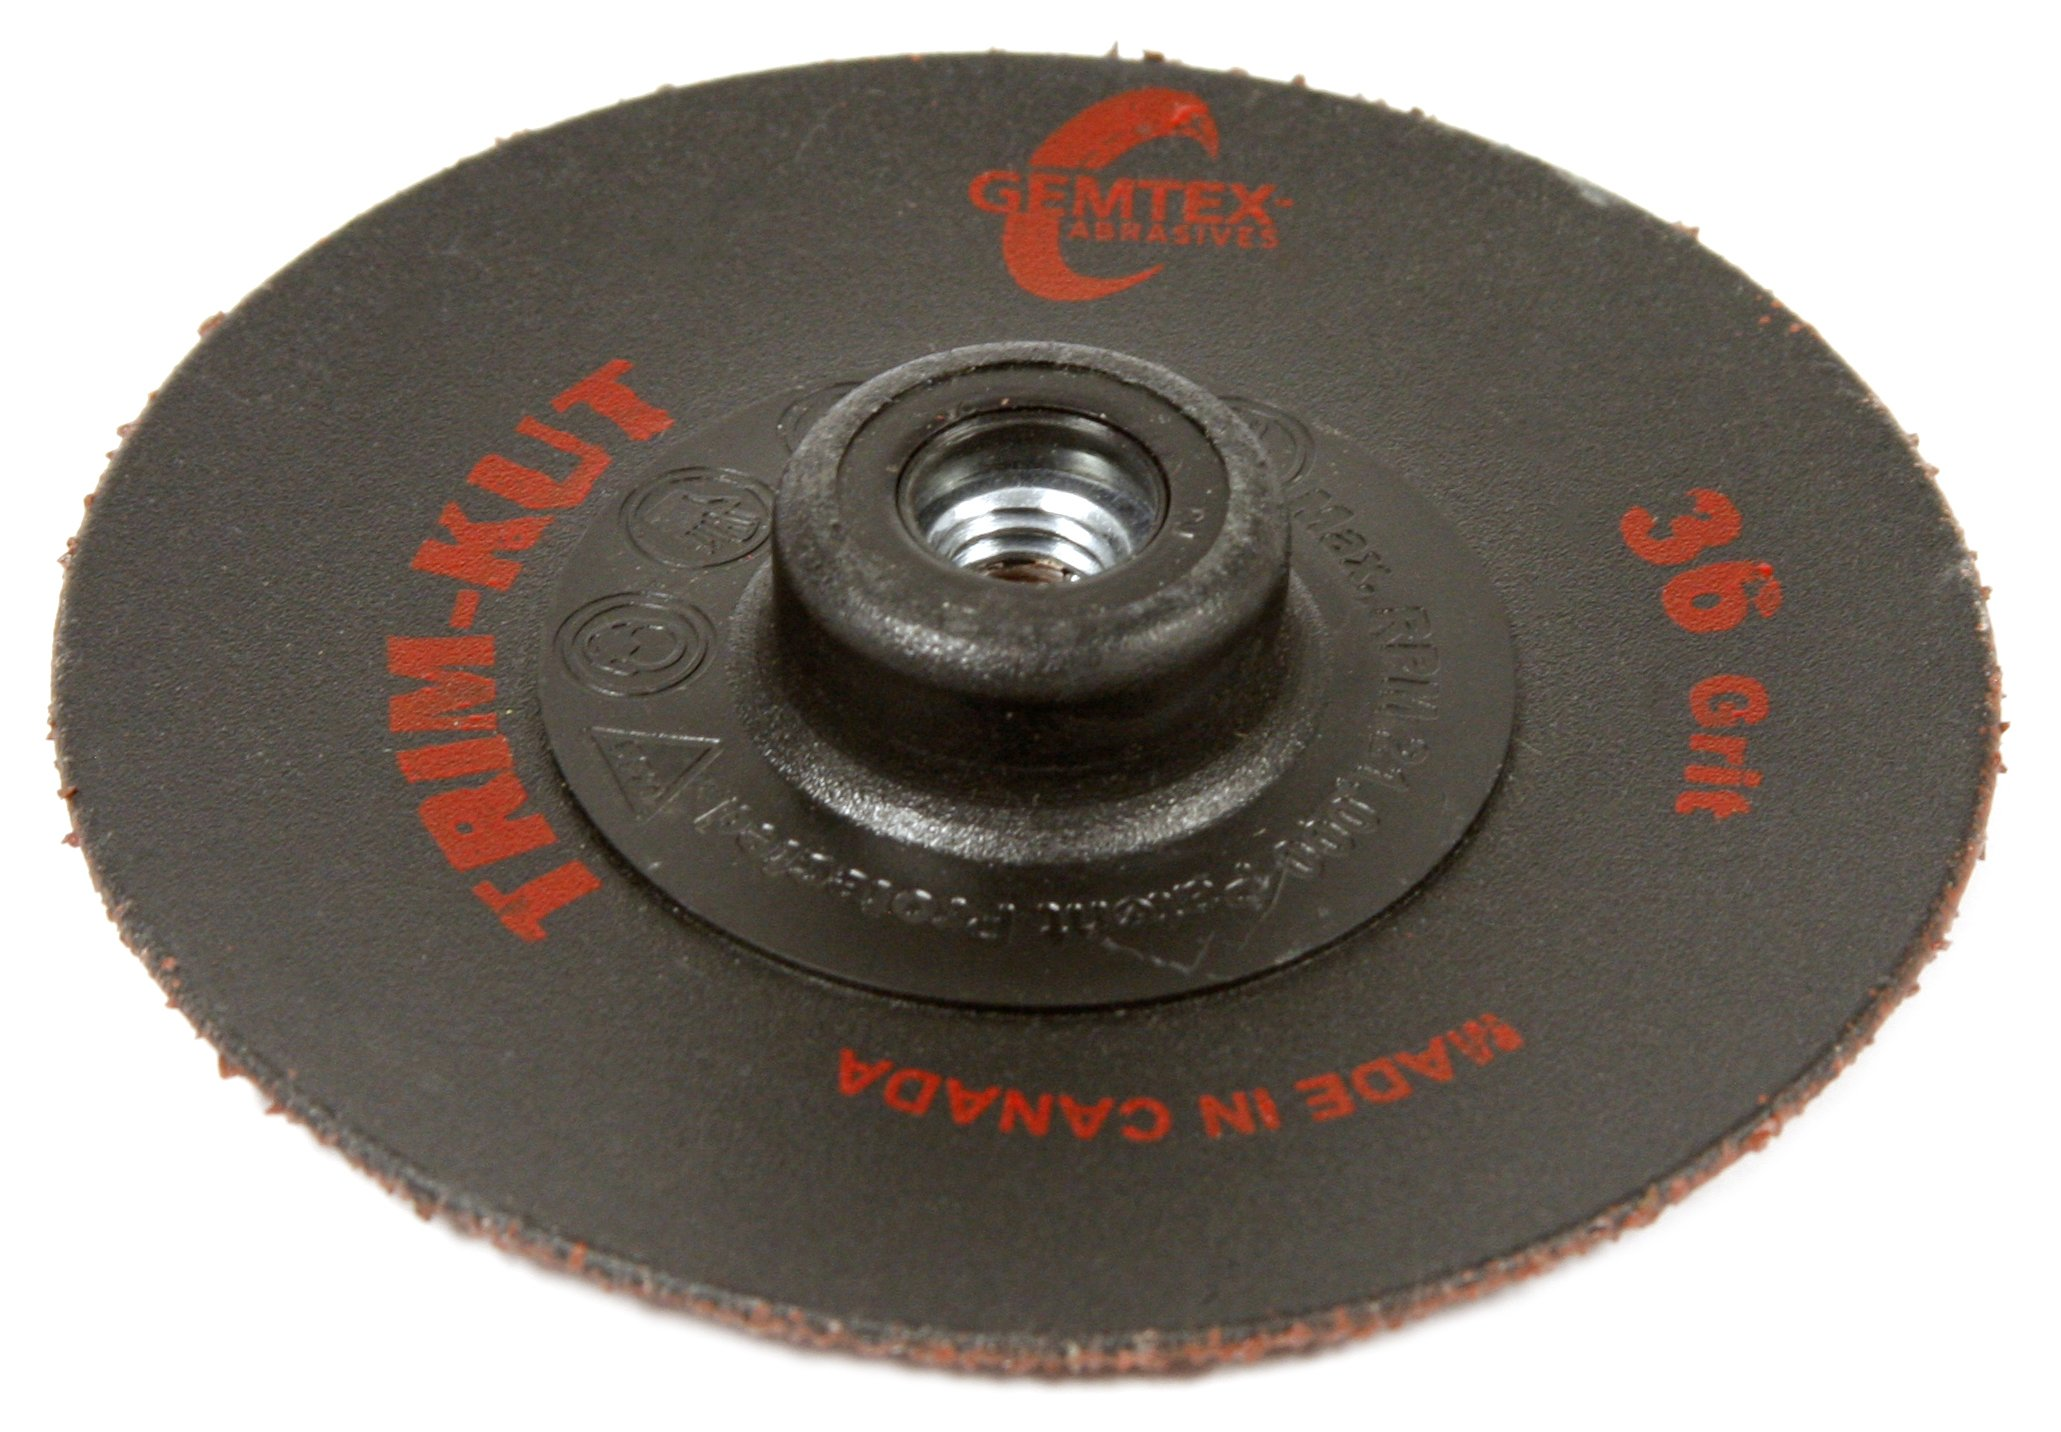 Forney 72445 Trim-Kut Type 27 Cutting Wheel, 3'', 36-Grit